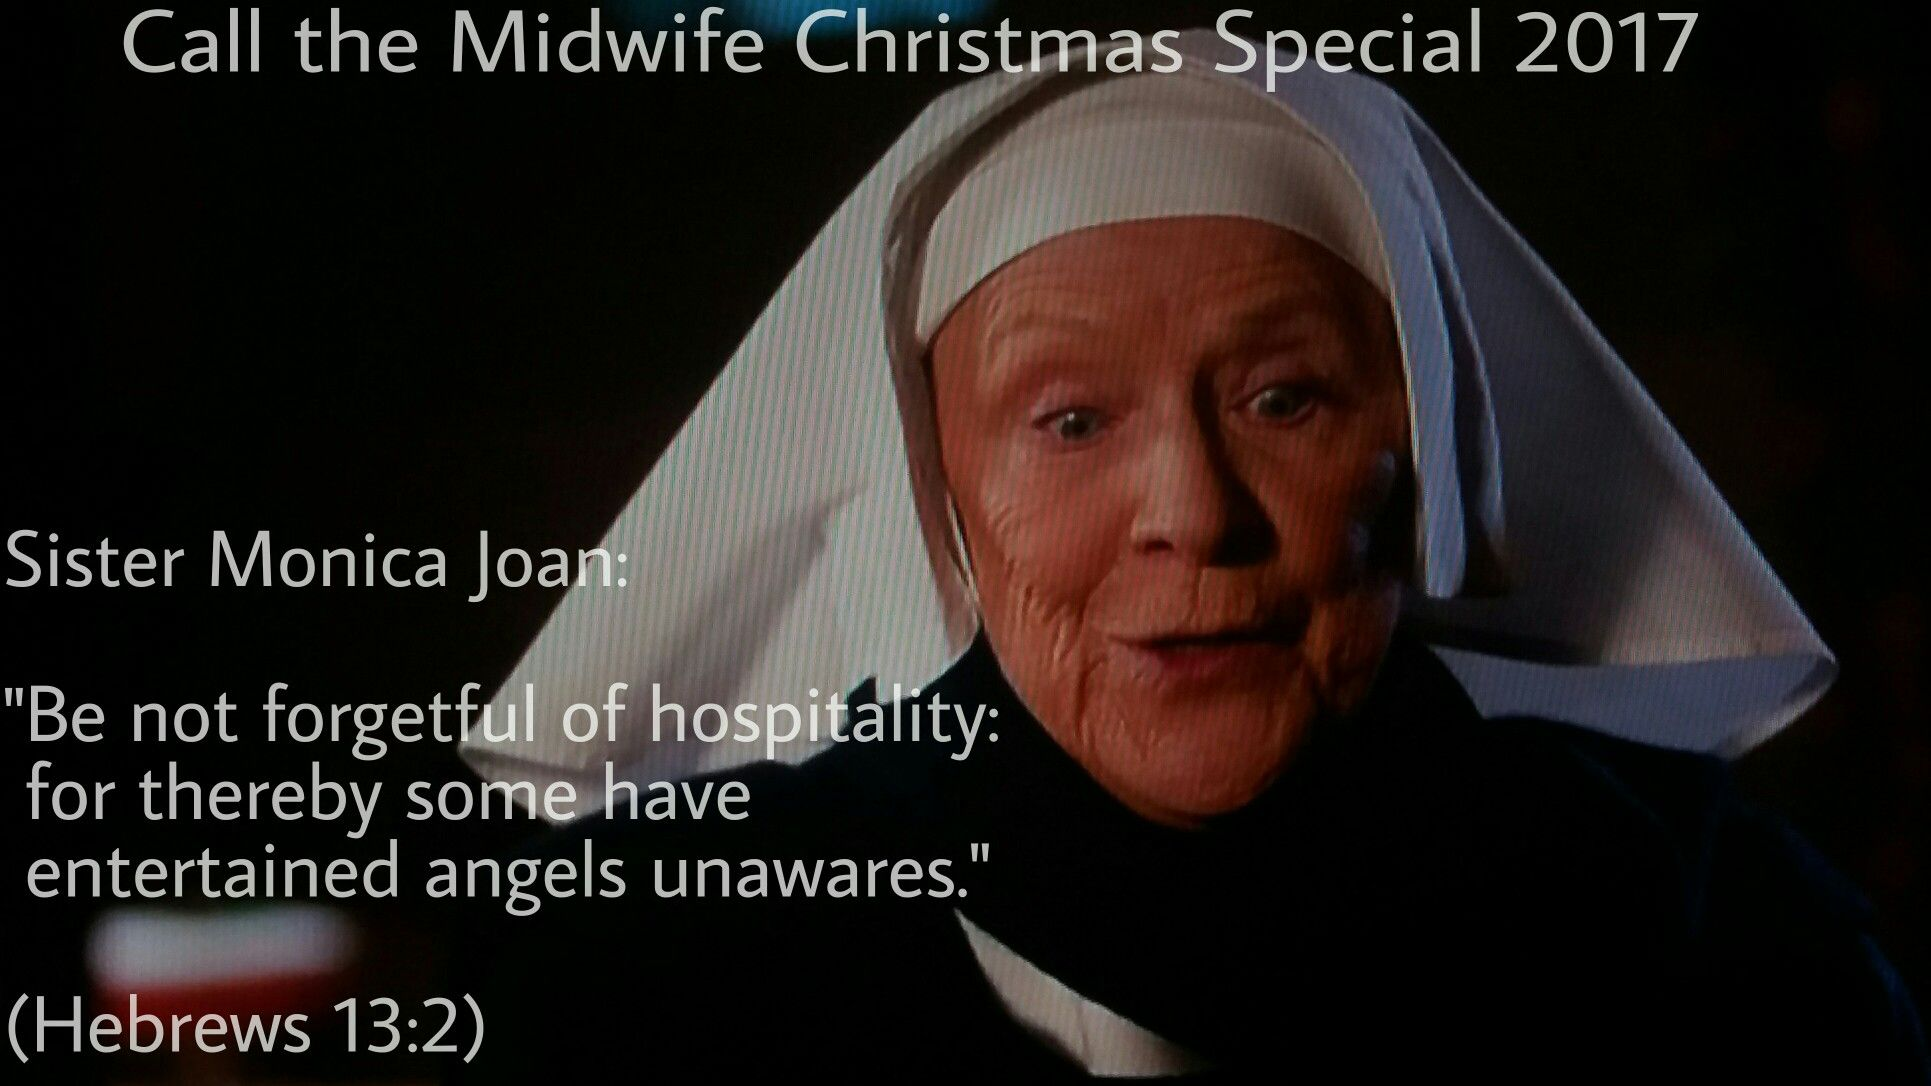 Call The Midwife Christmas 2020 Quote On Angels Pin by Keira Egerton on Merton in 2020 | Call the midwife, Retro